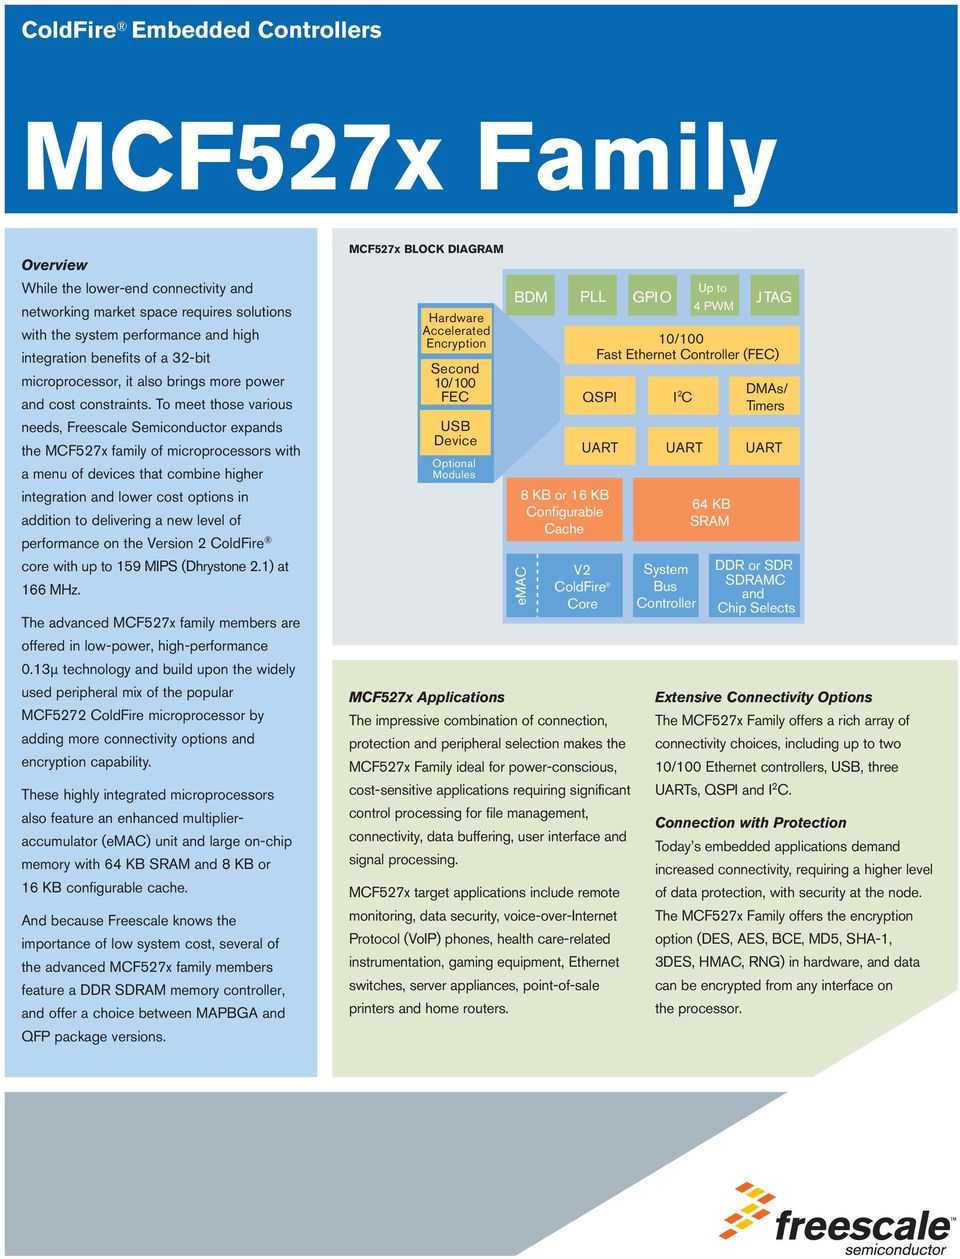 To meet those various needs, Freescale Semiconductor expands the MCF527x family of microprocessors with a menu of devices that combine higher integration and lower cost options in addition to